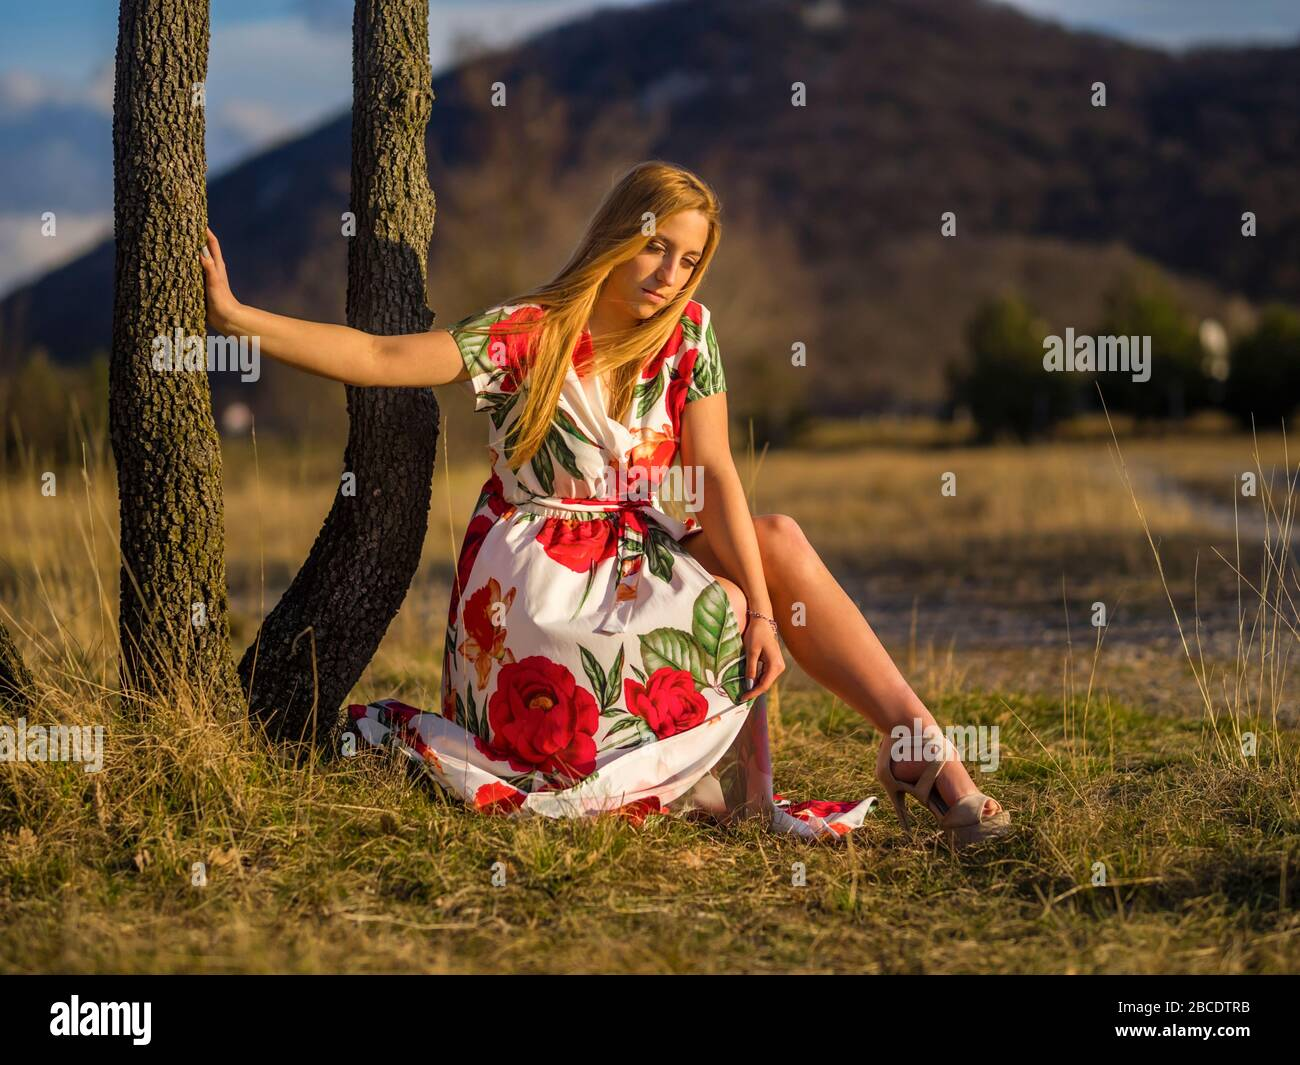 Teenage female person aka young woman trying to cover leg legs because of gust wind windy looking down serious setting sun sunset warm light Stock Photo